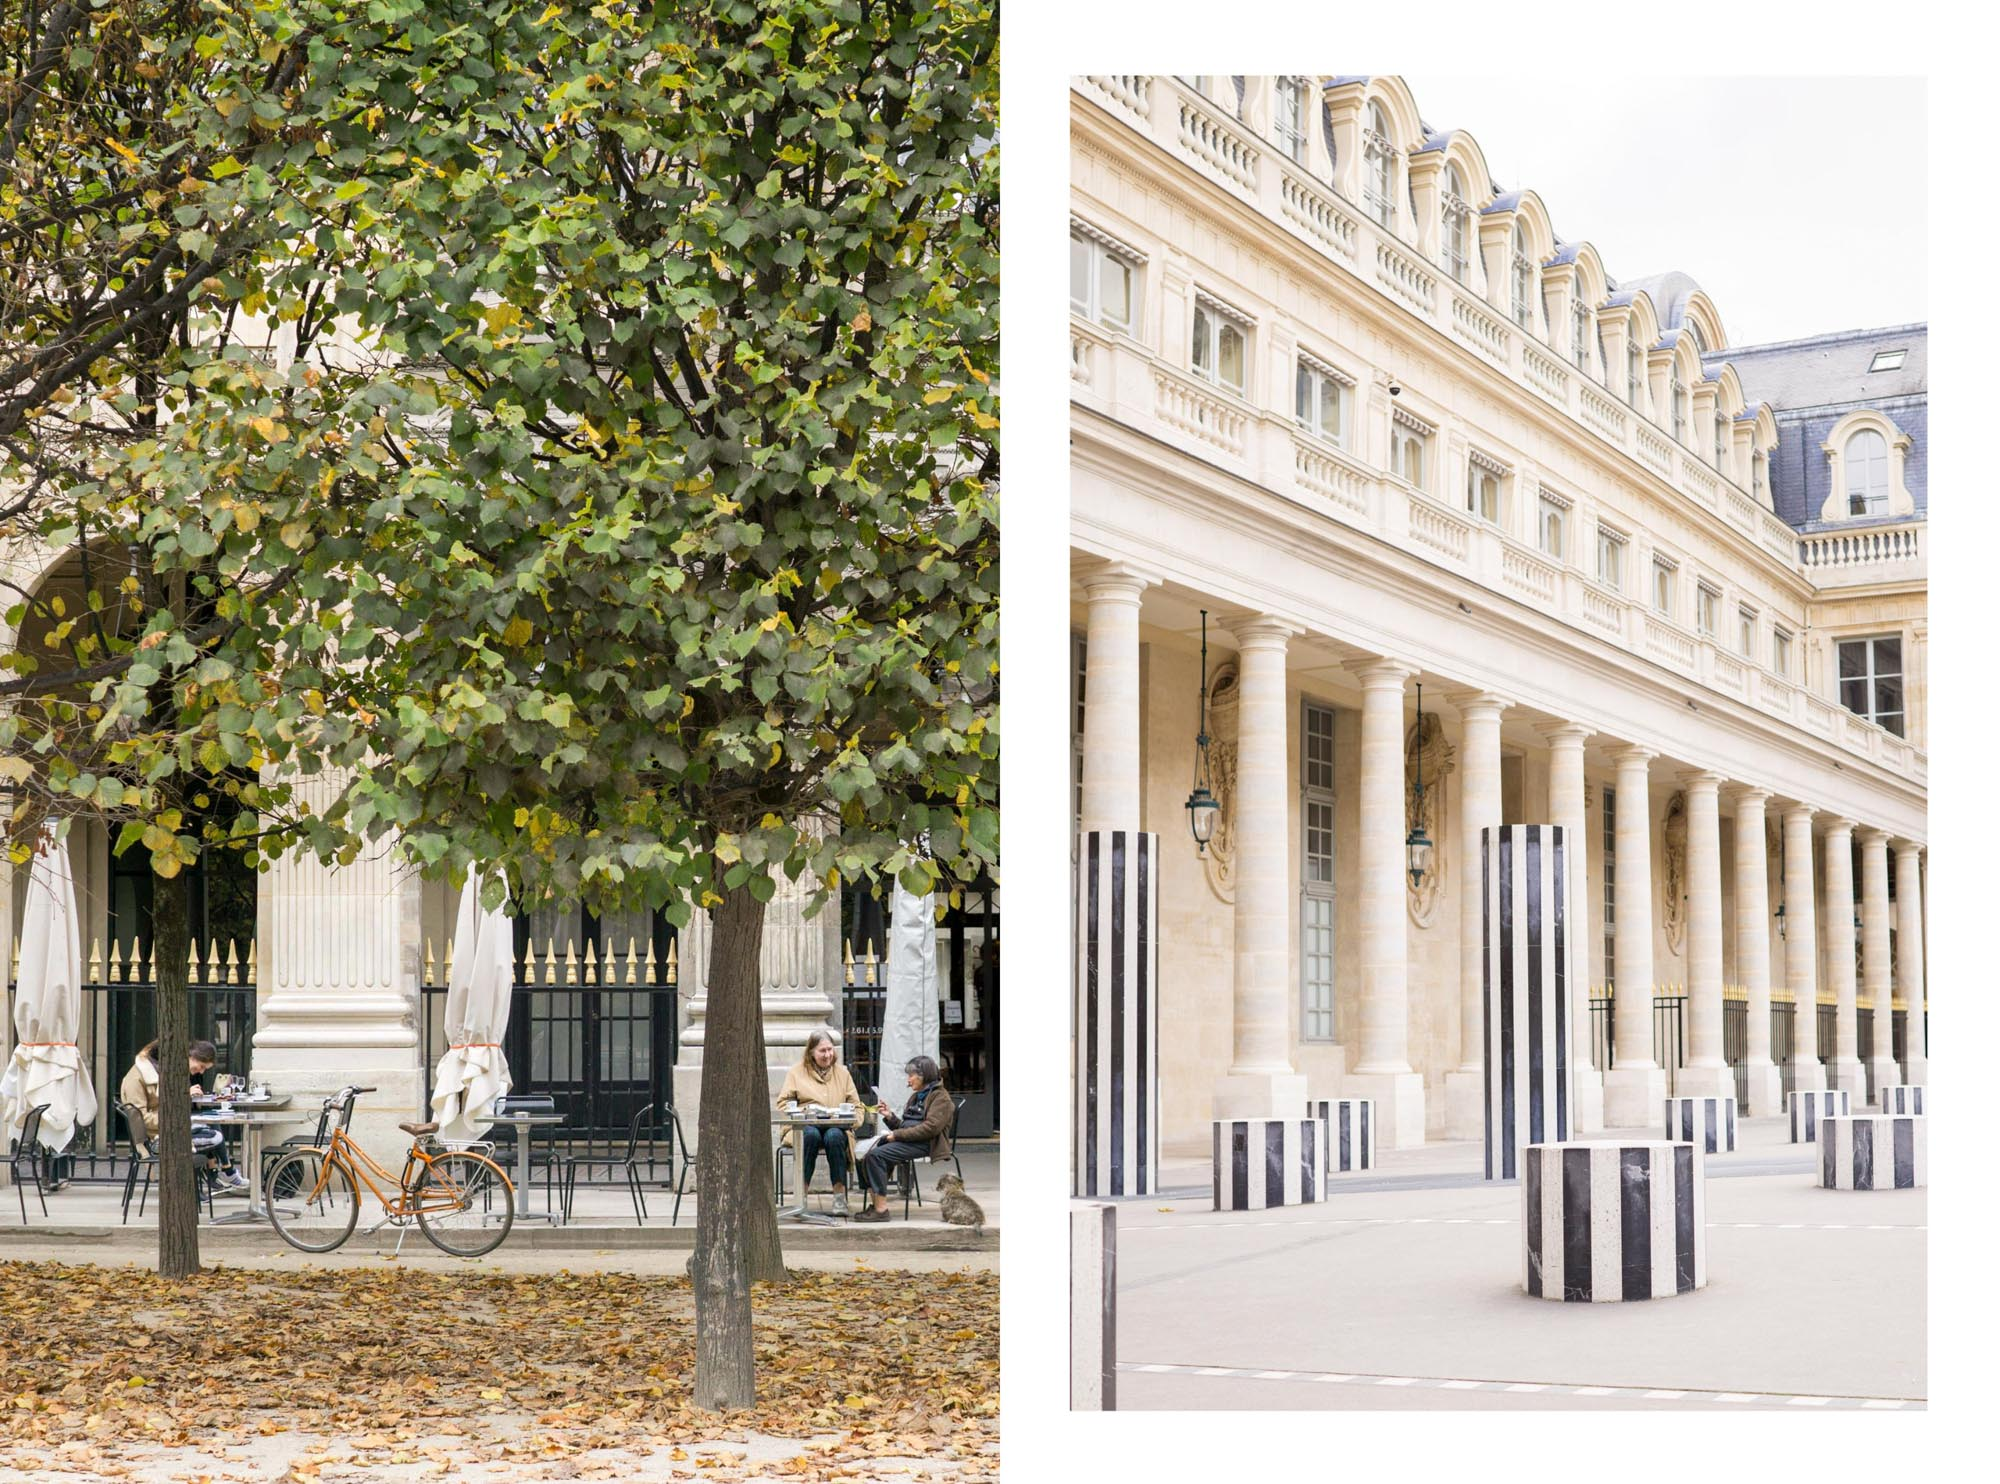 Autumn in Paris | Paris Travel Guide | Travel Photography | Sharing my favourite places to experience Autumn in Paris.